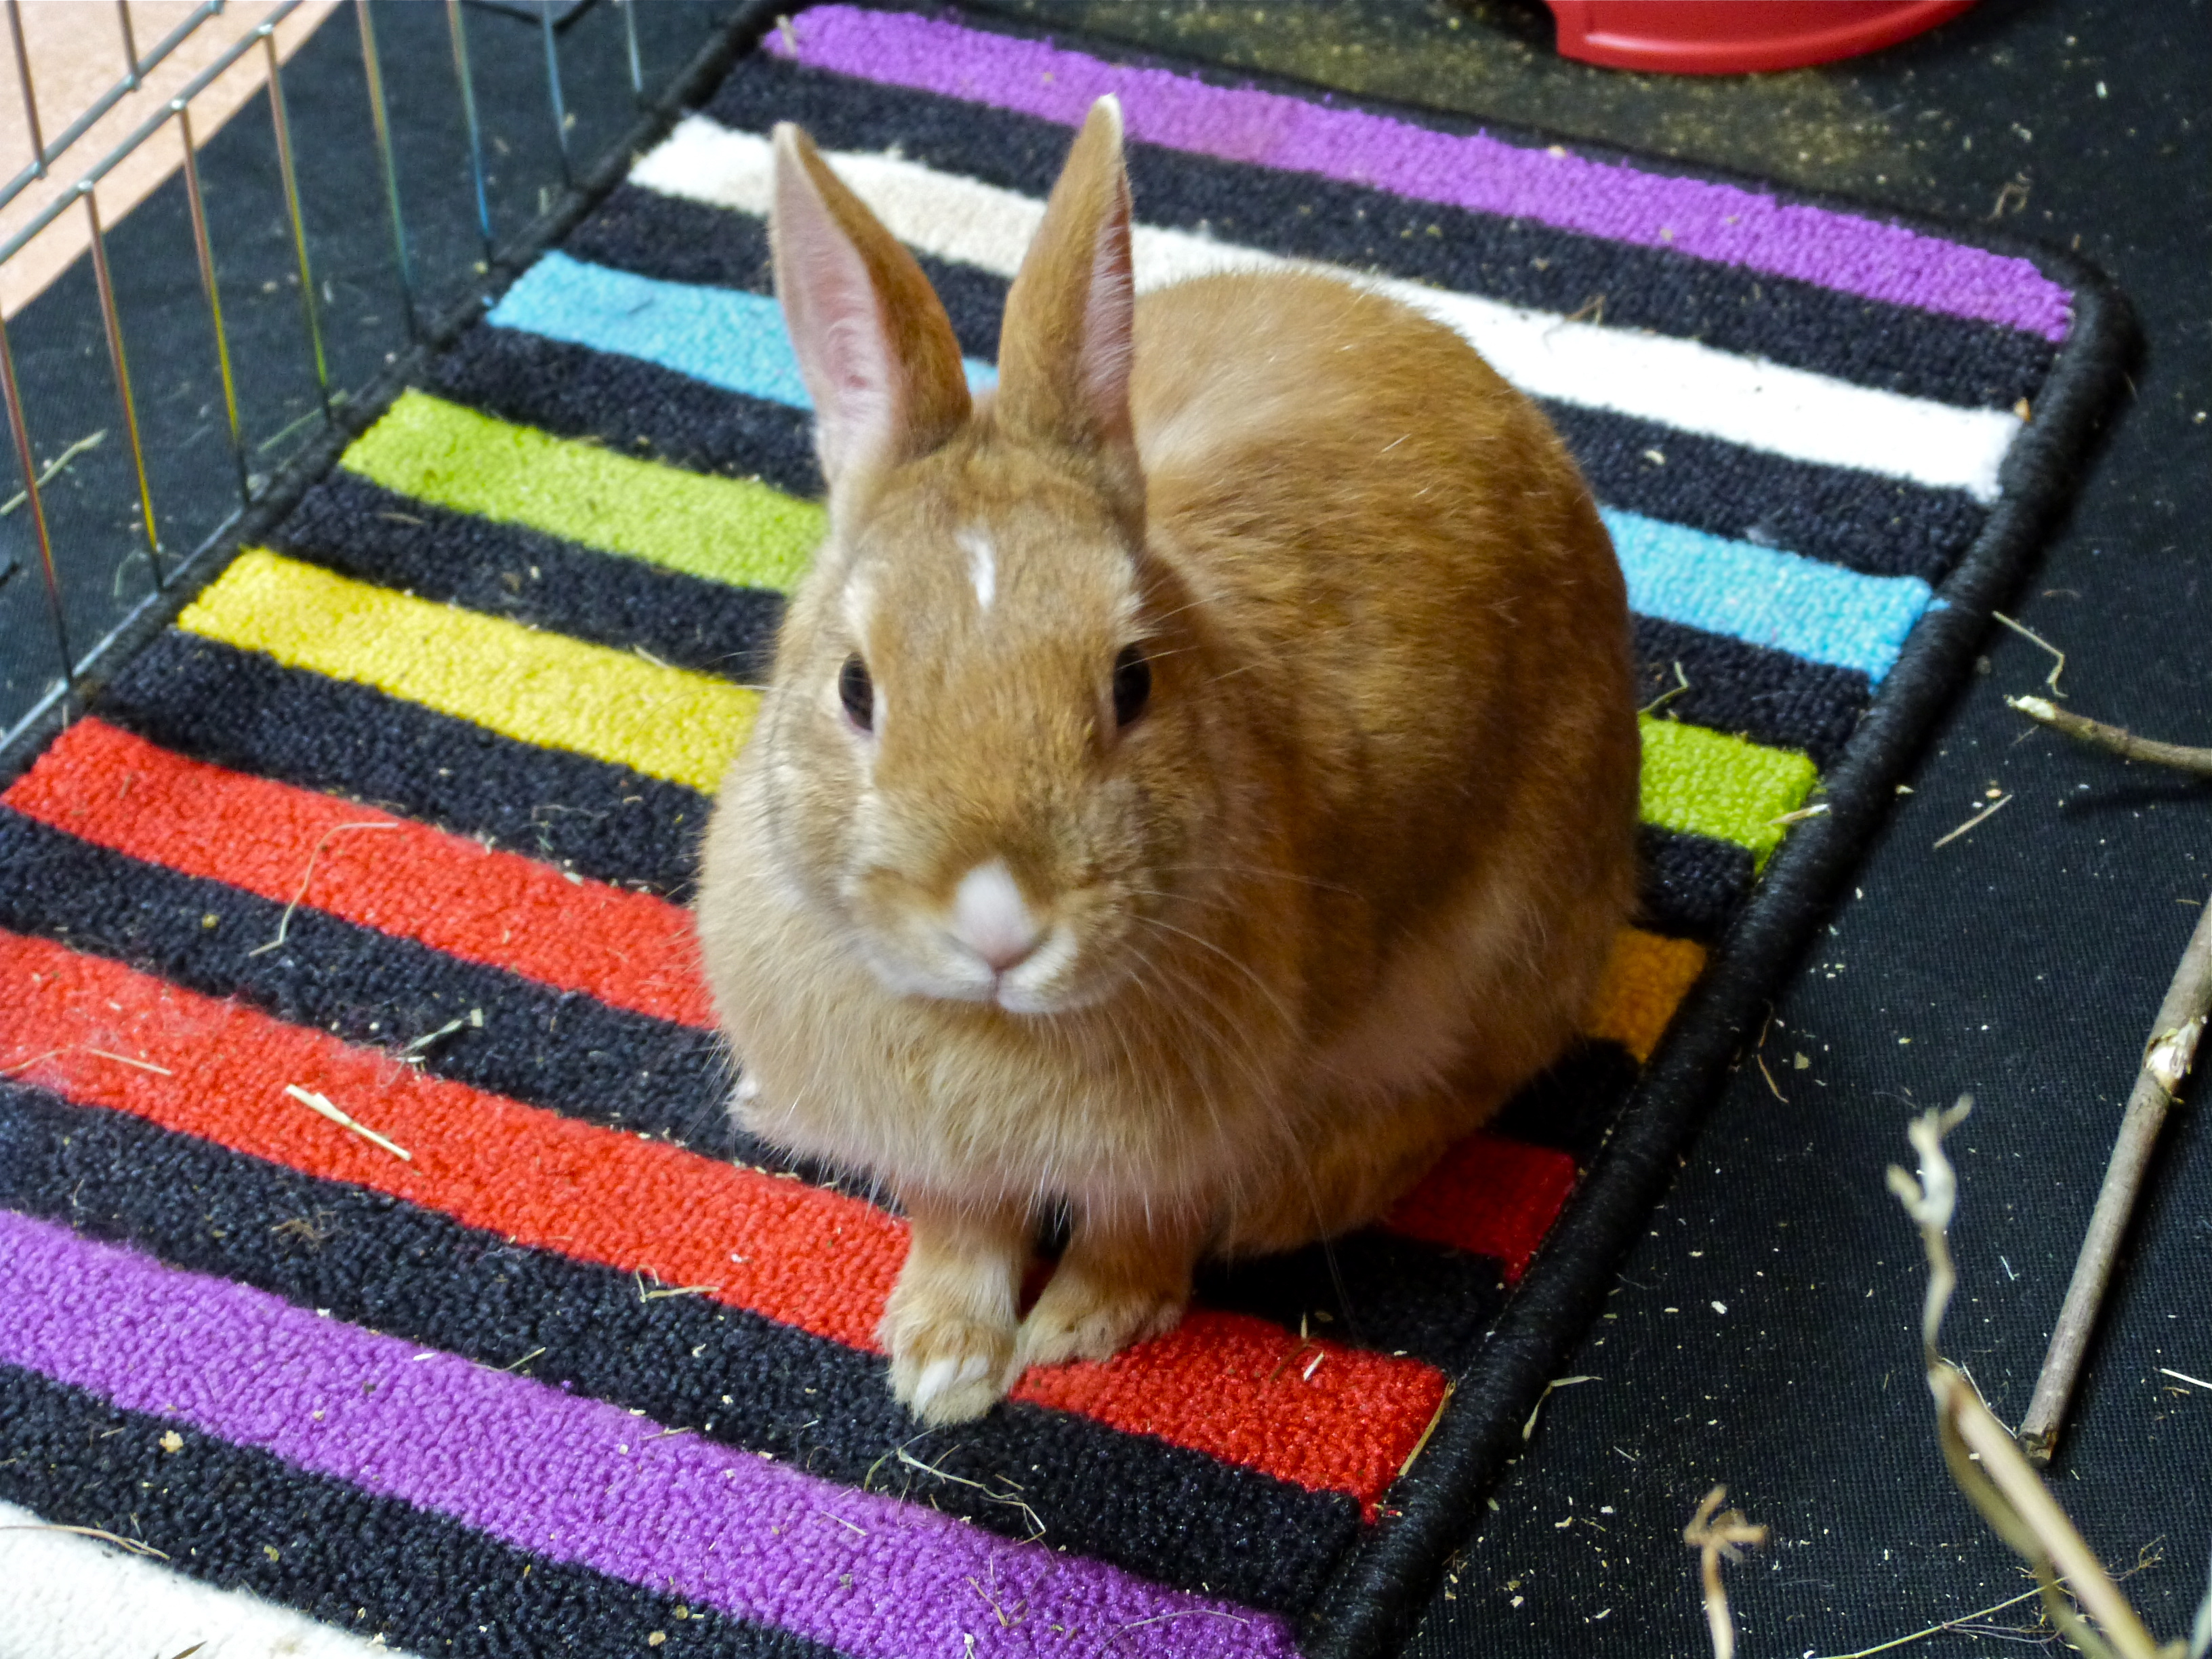 Kirby in her pen, Animal, Bunny, Cute, Indoor, HQ Photo